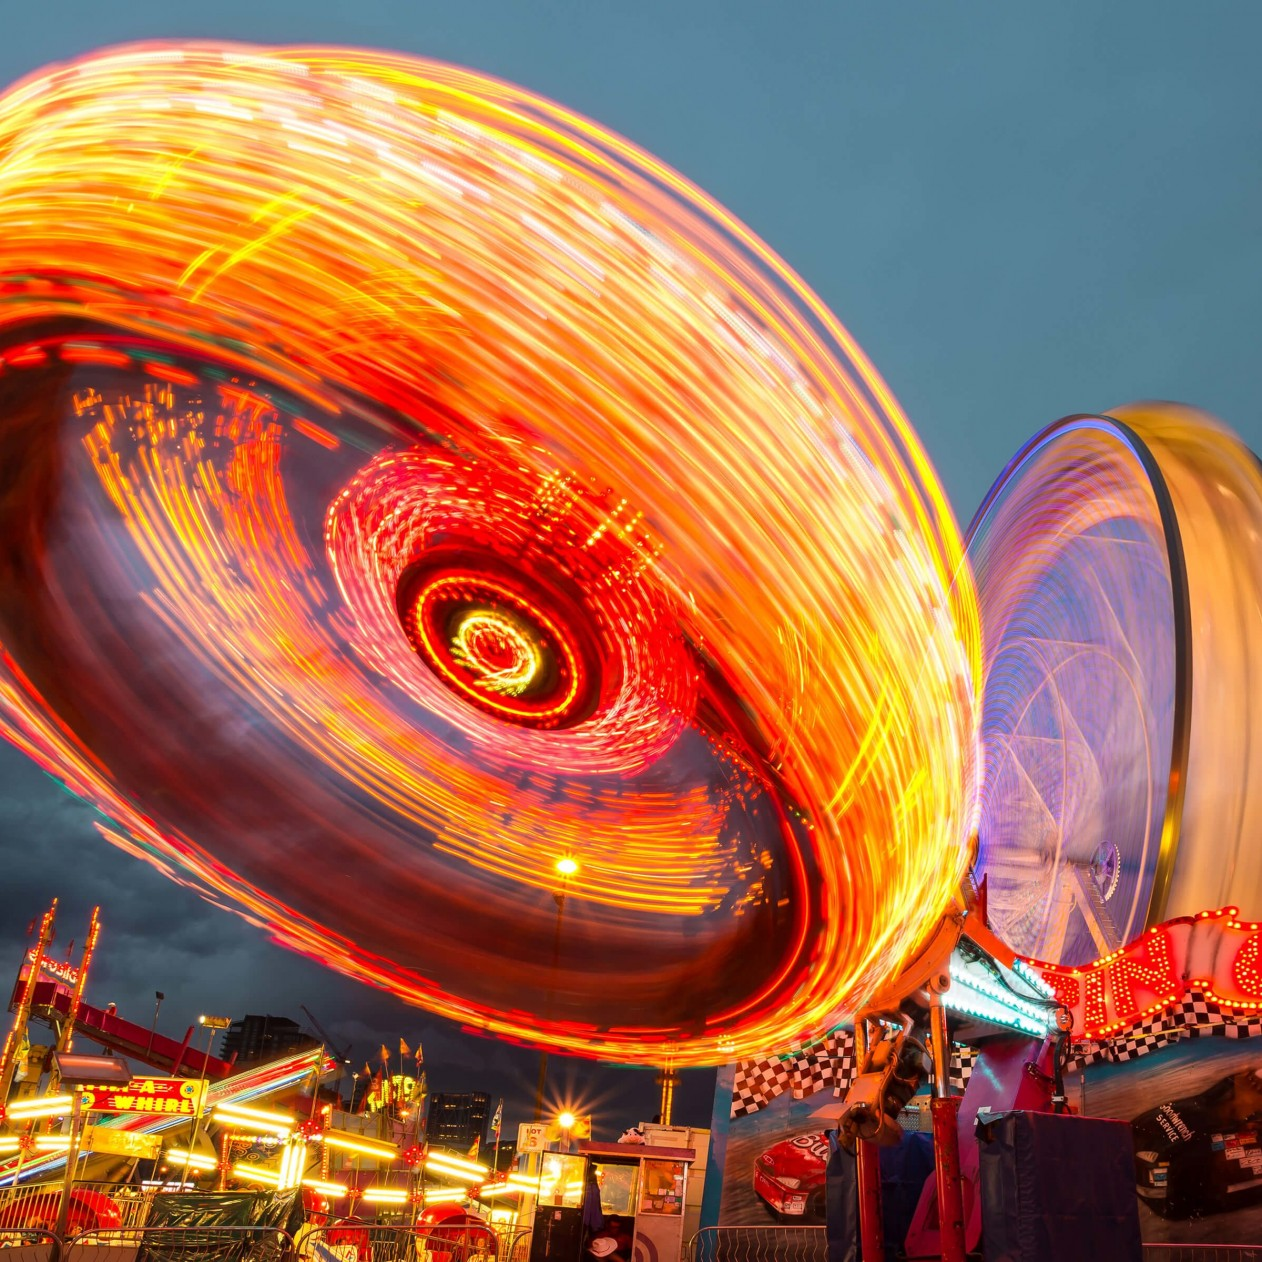 Calgary Stampede Lights Wallpaper for Apple iPad mini